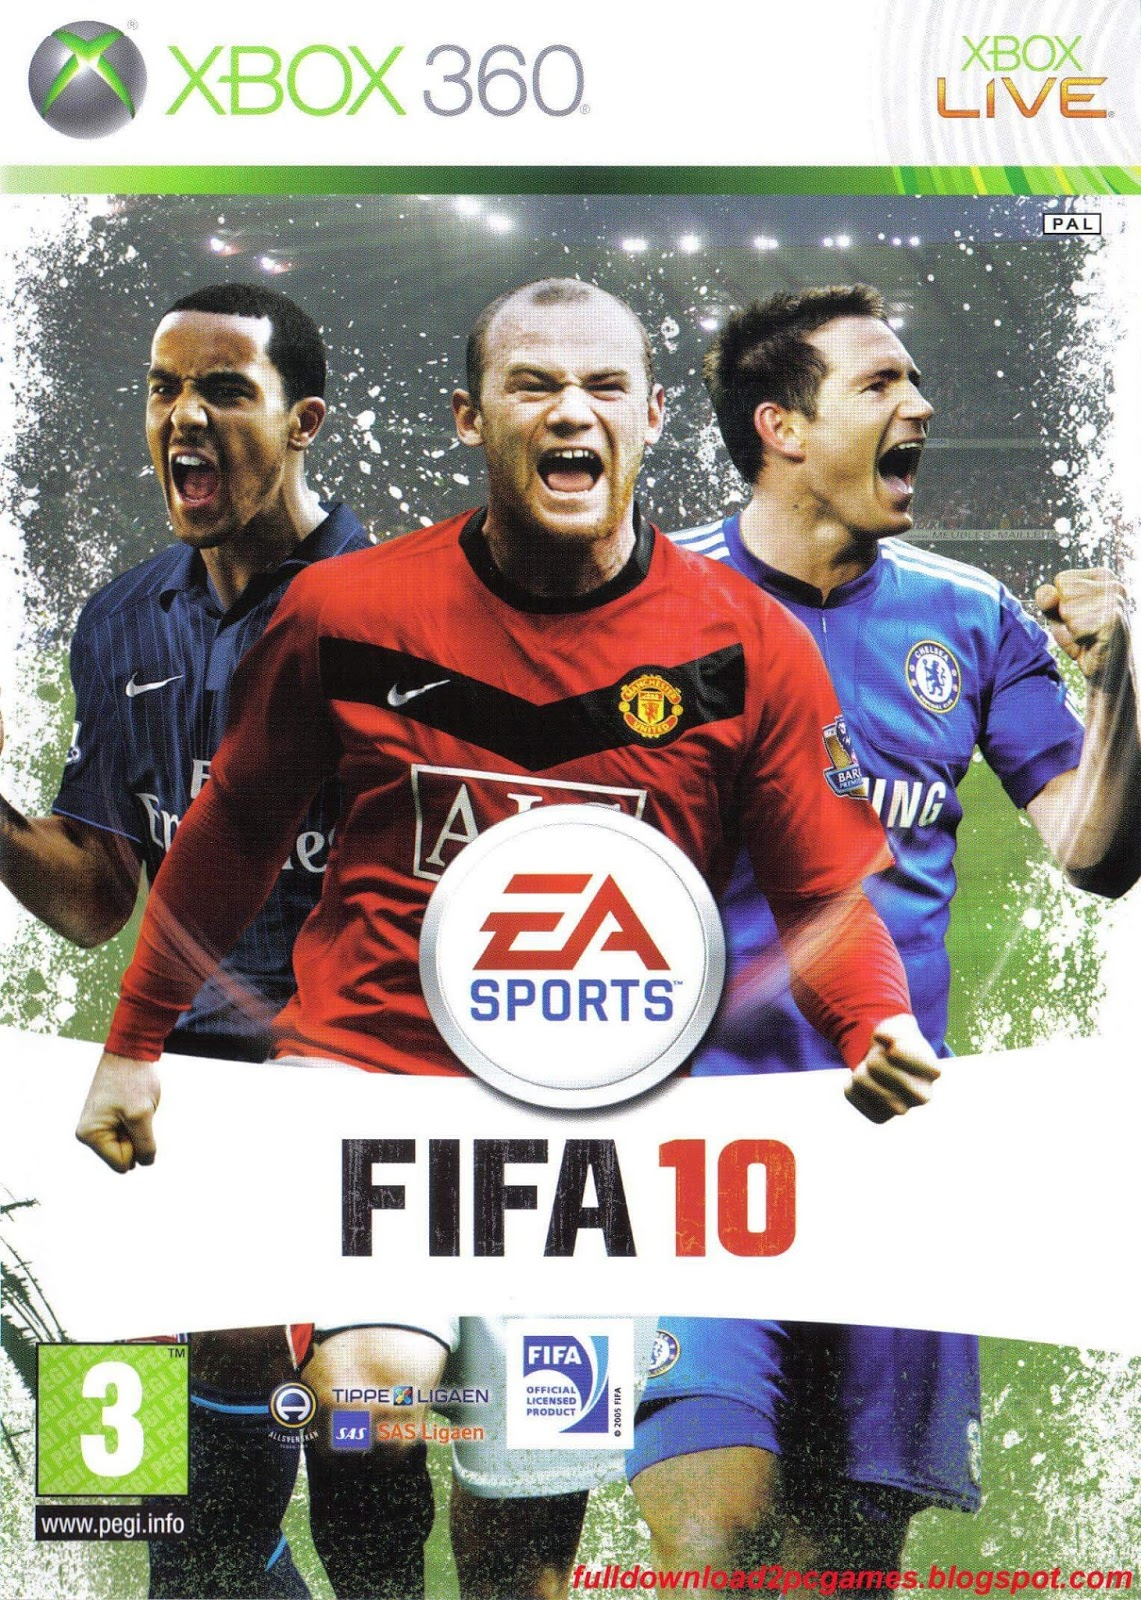 Fifa 10 free download fever of games.